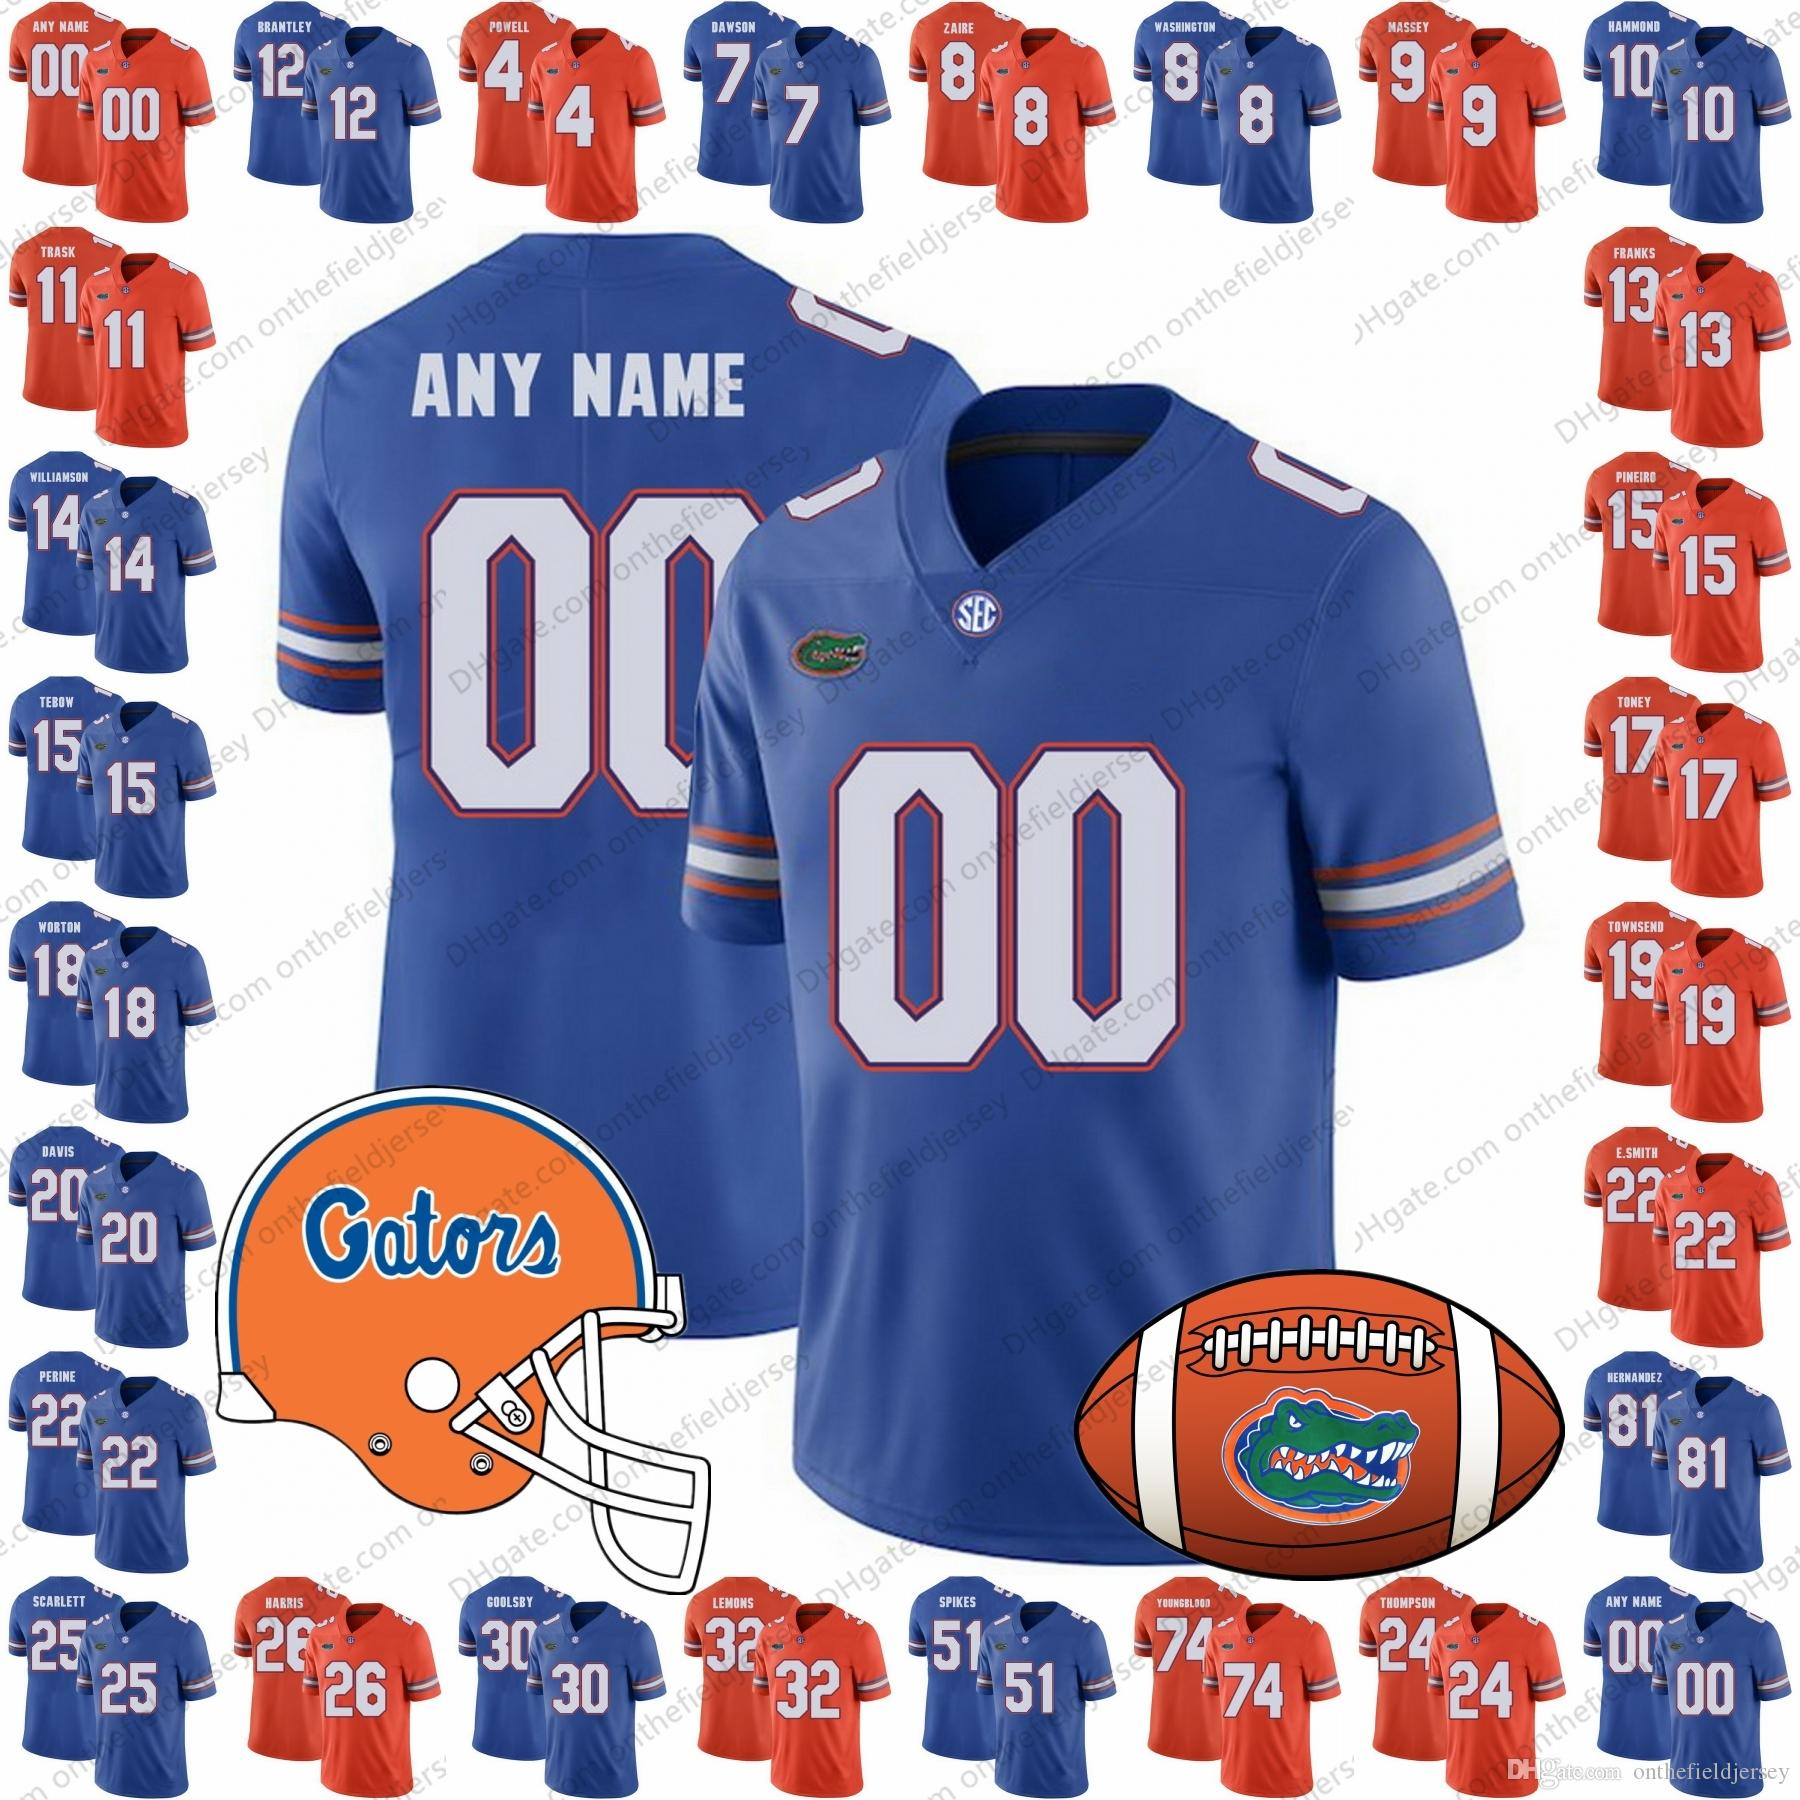 size 40 a2562 14bfe Custom Florida Gators 2018 NEW BRAND JUMP College Football Jerseys Any Name  Number Orange Blue NCAA #15 Tim Tebow 22 Emmitt Smith S-3XL